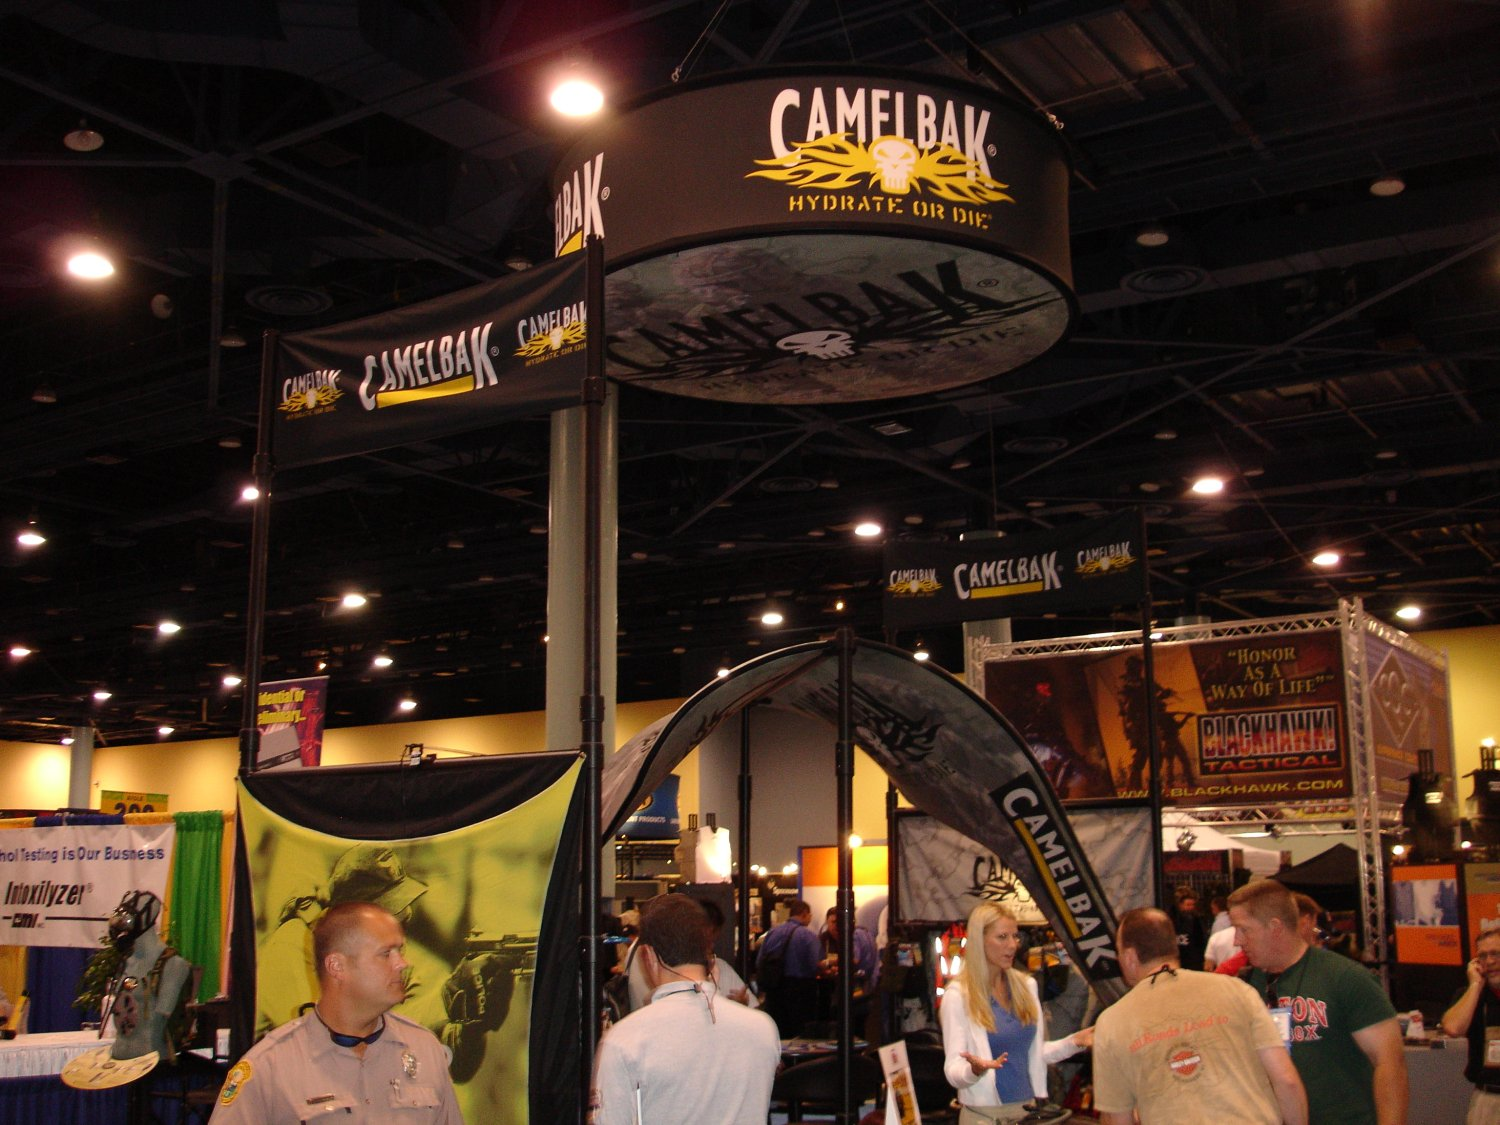 Camelbak%20Booth 1 <!  :en  >CamelBak Gears Up for U.S. Military SPECOPS and Chemical/Biological Warfare<!  :  >